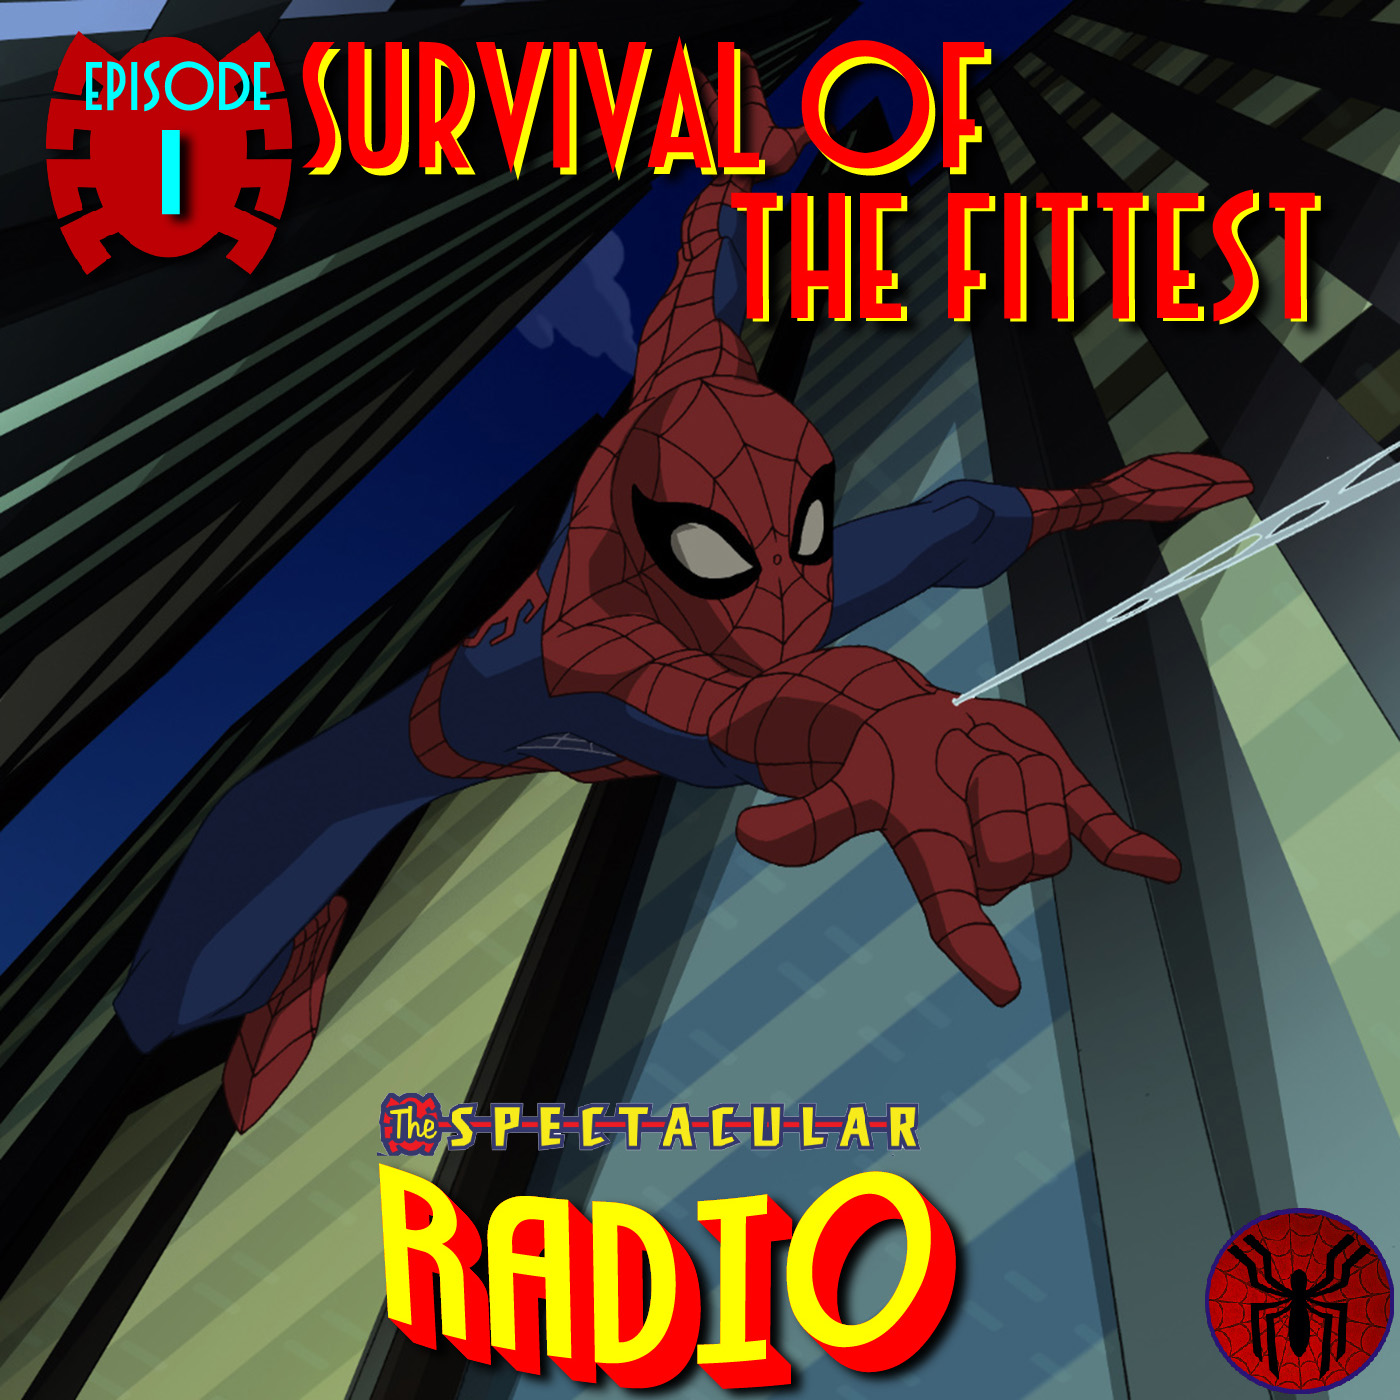 Spectacular Radio Episode 1: Survival of the Fittest w/ Greg Weisman and Jennifer L. Anderson